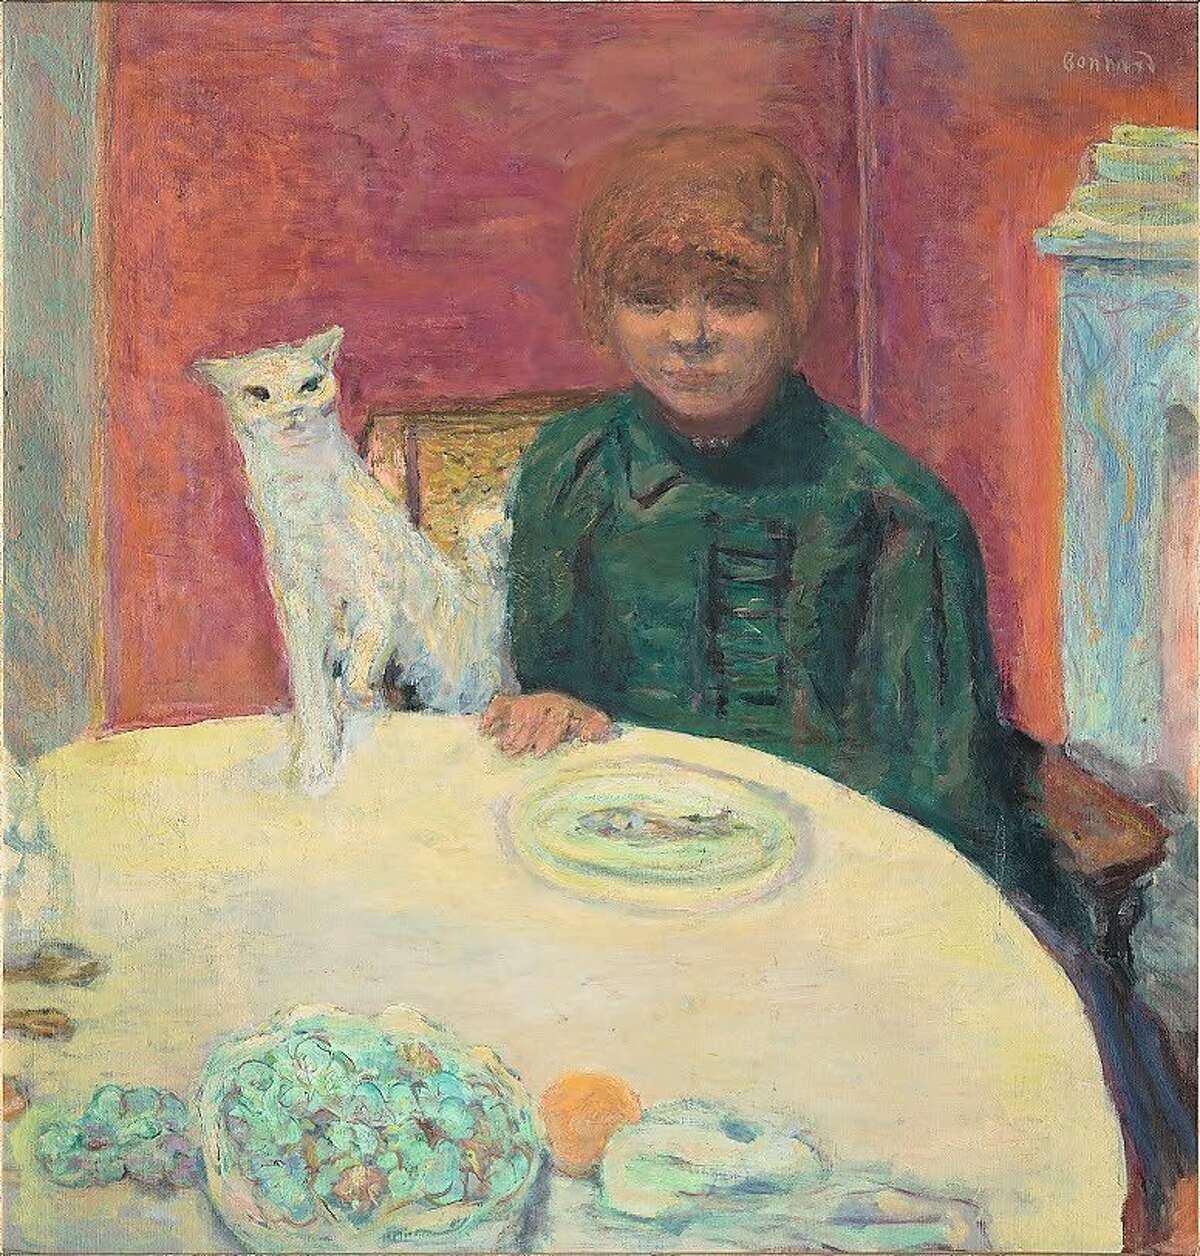 """Pierre Bonnard, """"Woman with a Cat, or The Demanding Cat"""" (1912)."""